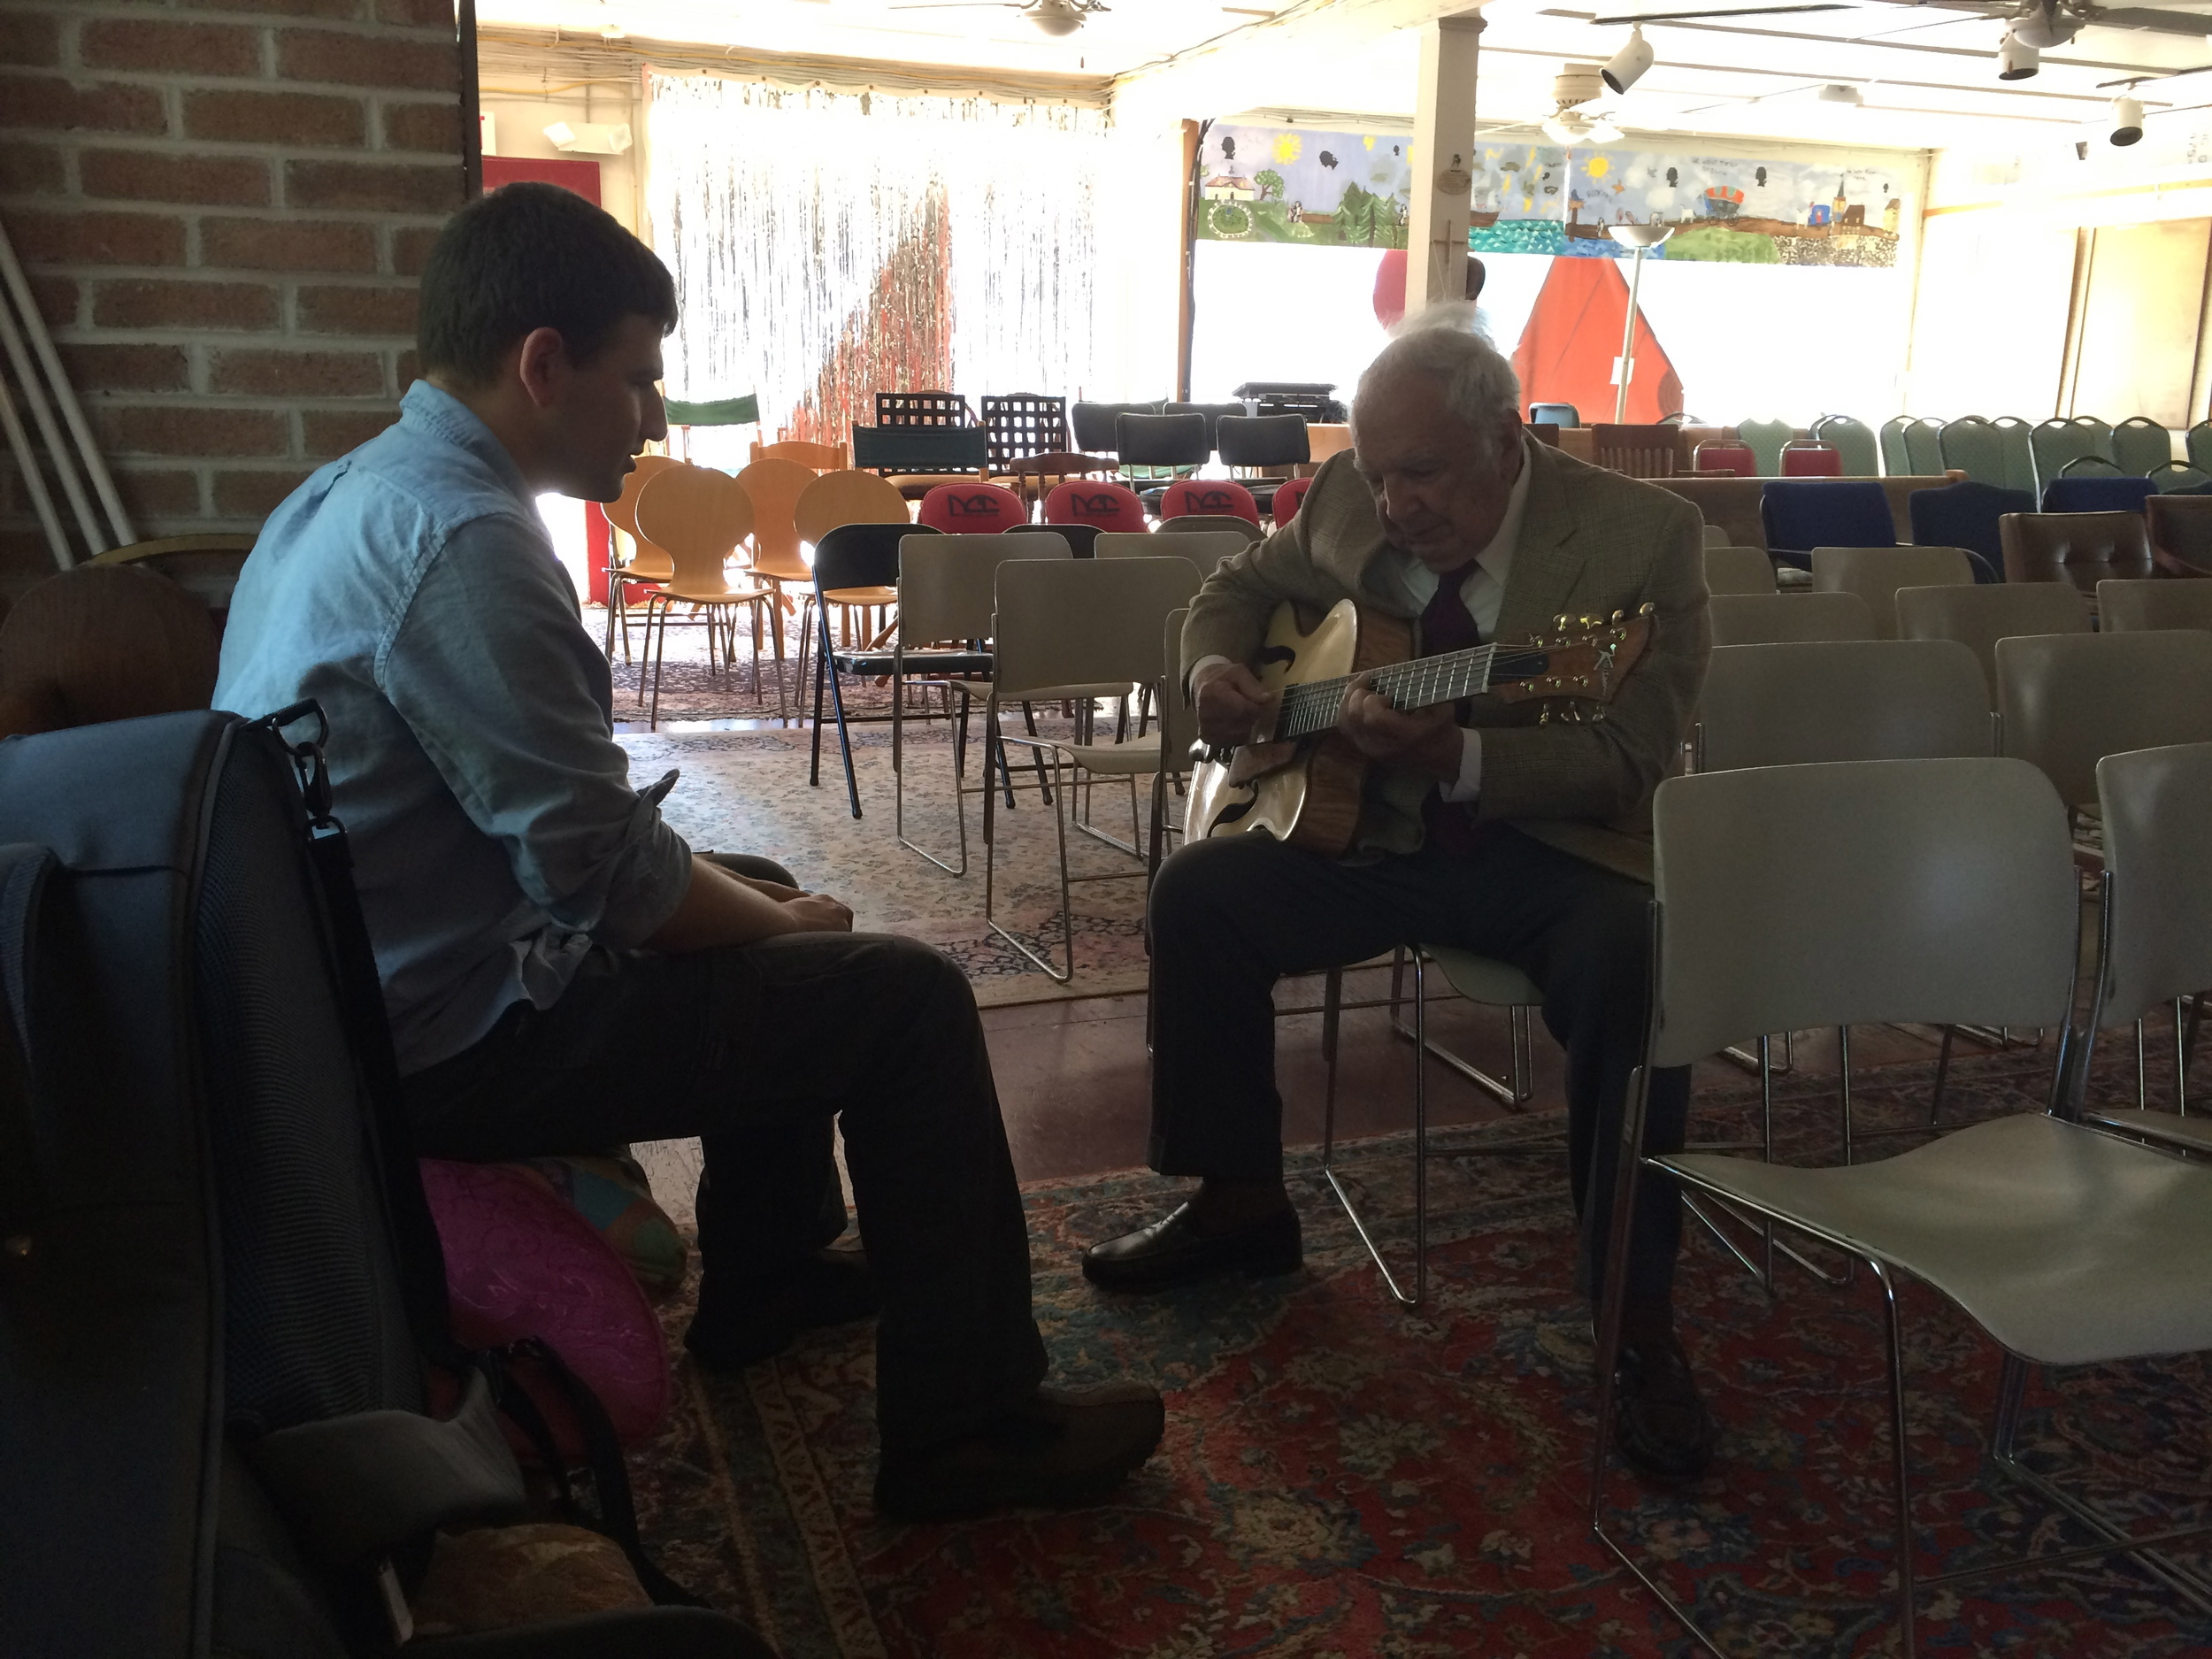 Bucky Pizzarelli trying out the new guitar